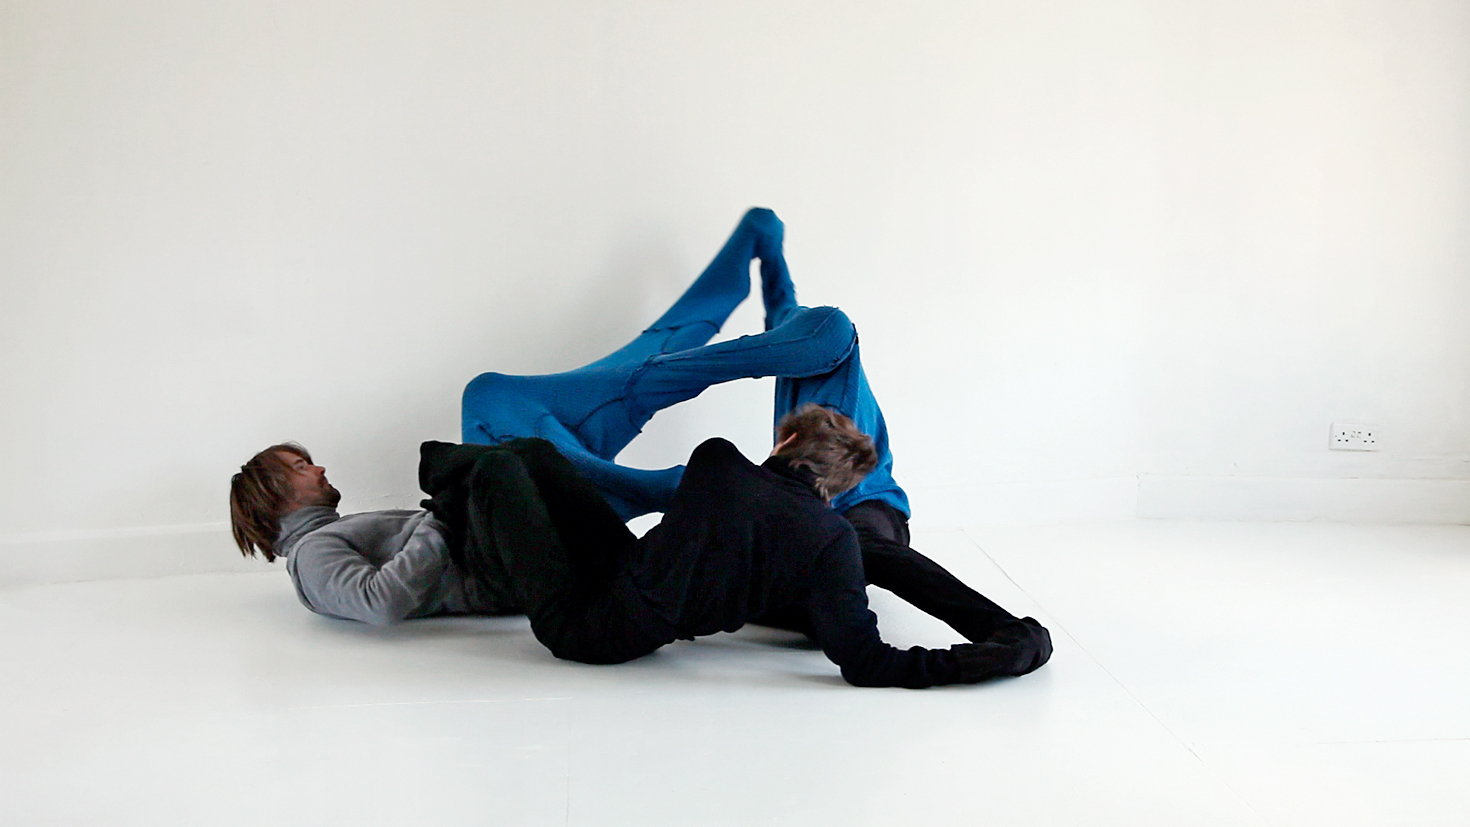 Investigation into Collaboration 2, picture 1 of performance , ICA, 2010